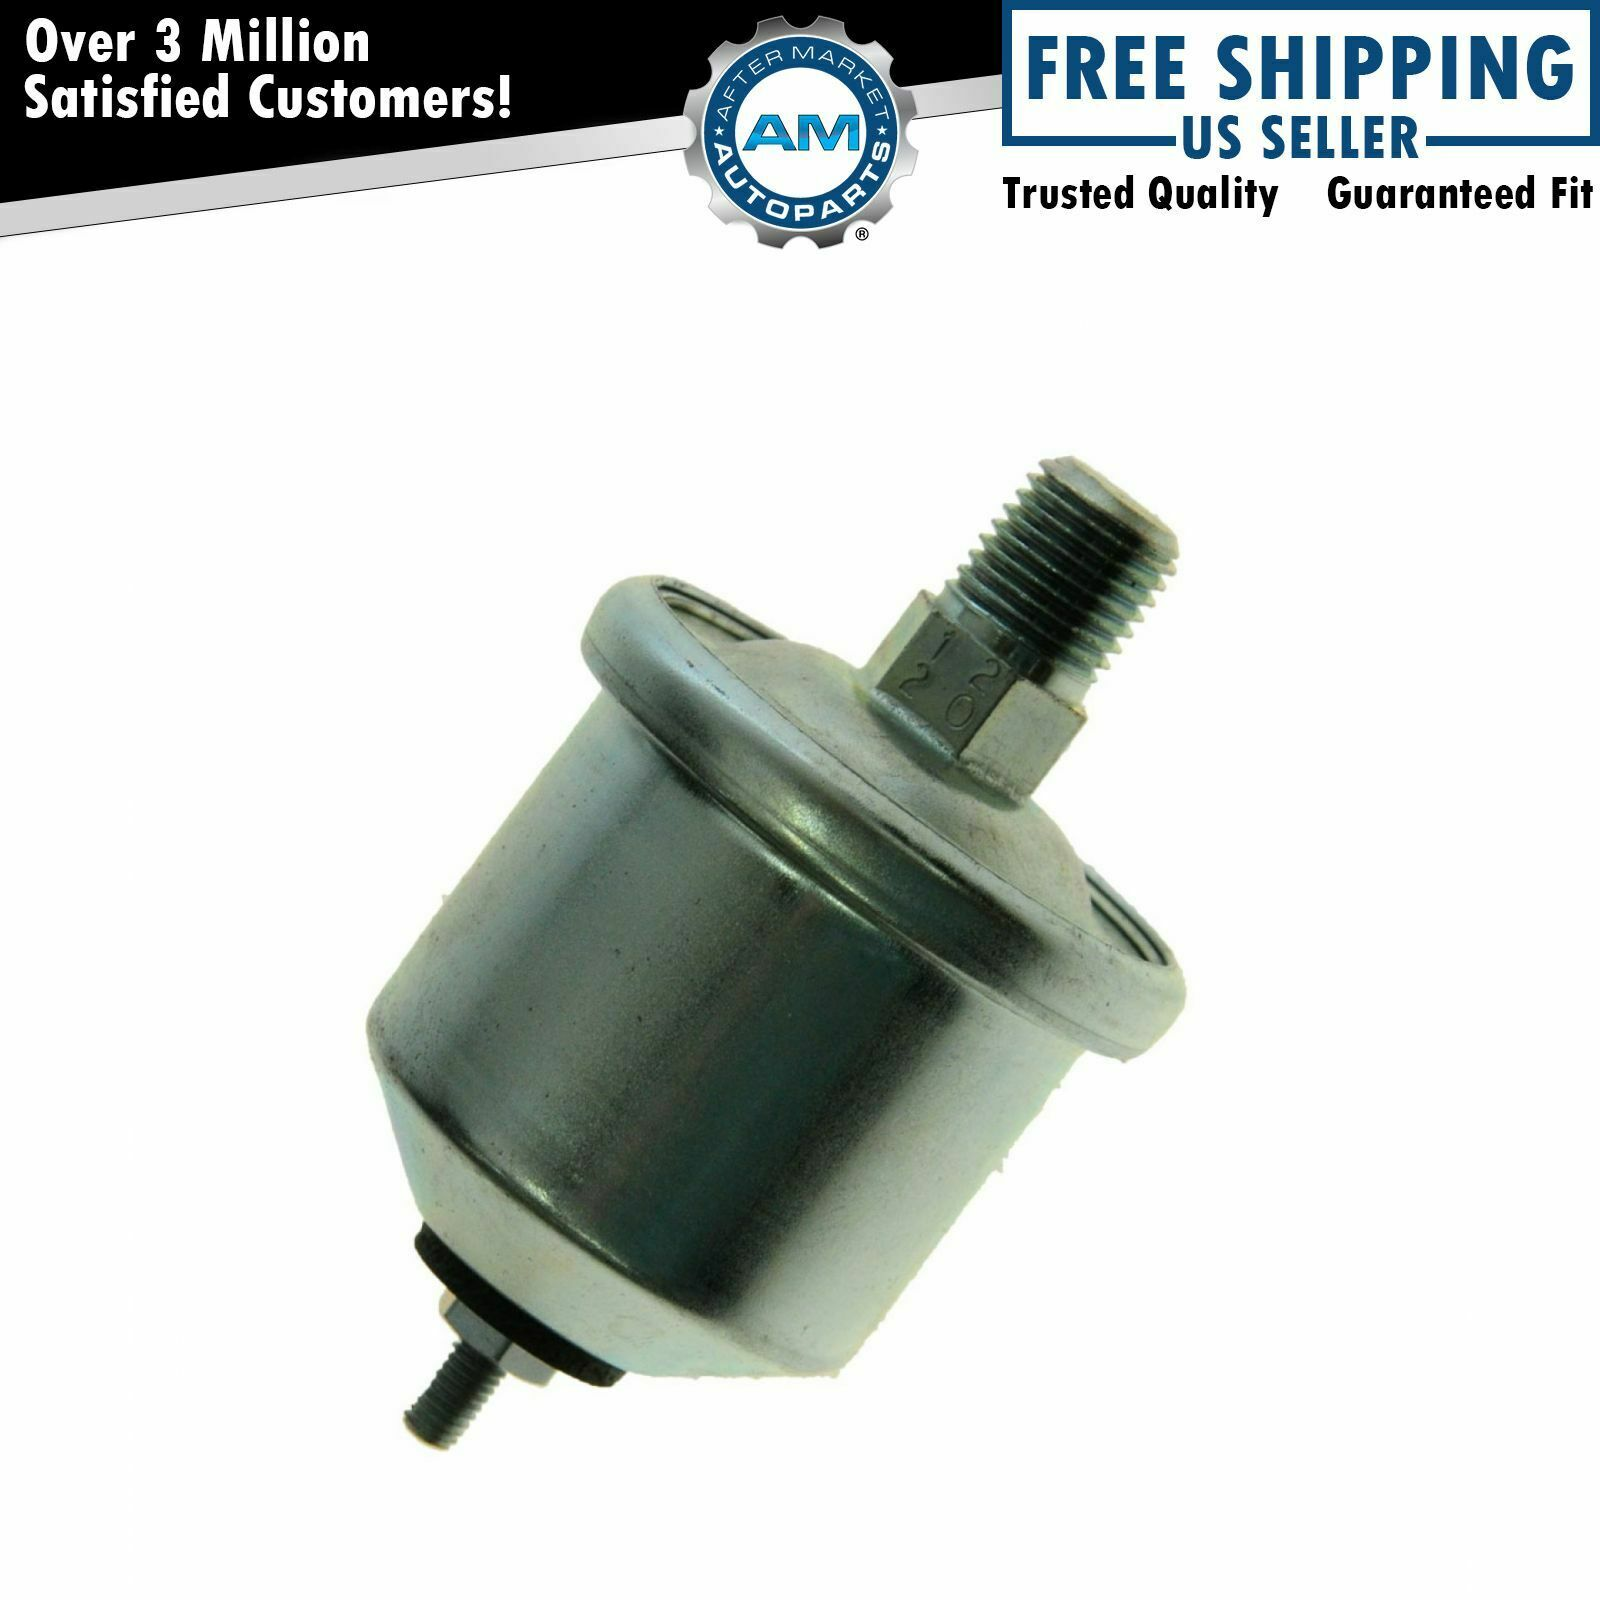 Oil Pressure Sensor Switch Sender For Lincoln Mercury Ford Jeep Amc Maxima Wiring Harness 1 Of 3only 5 Available